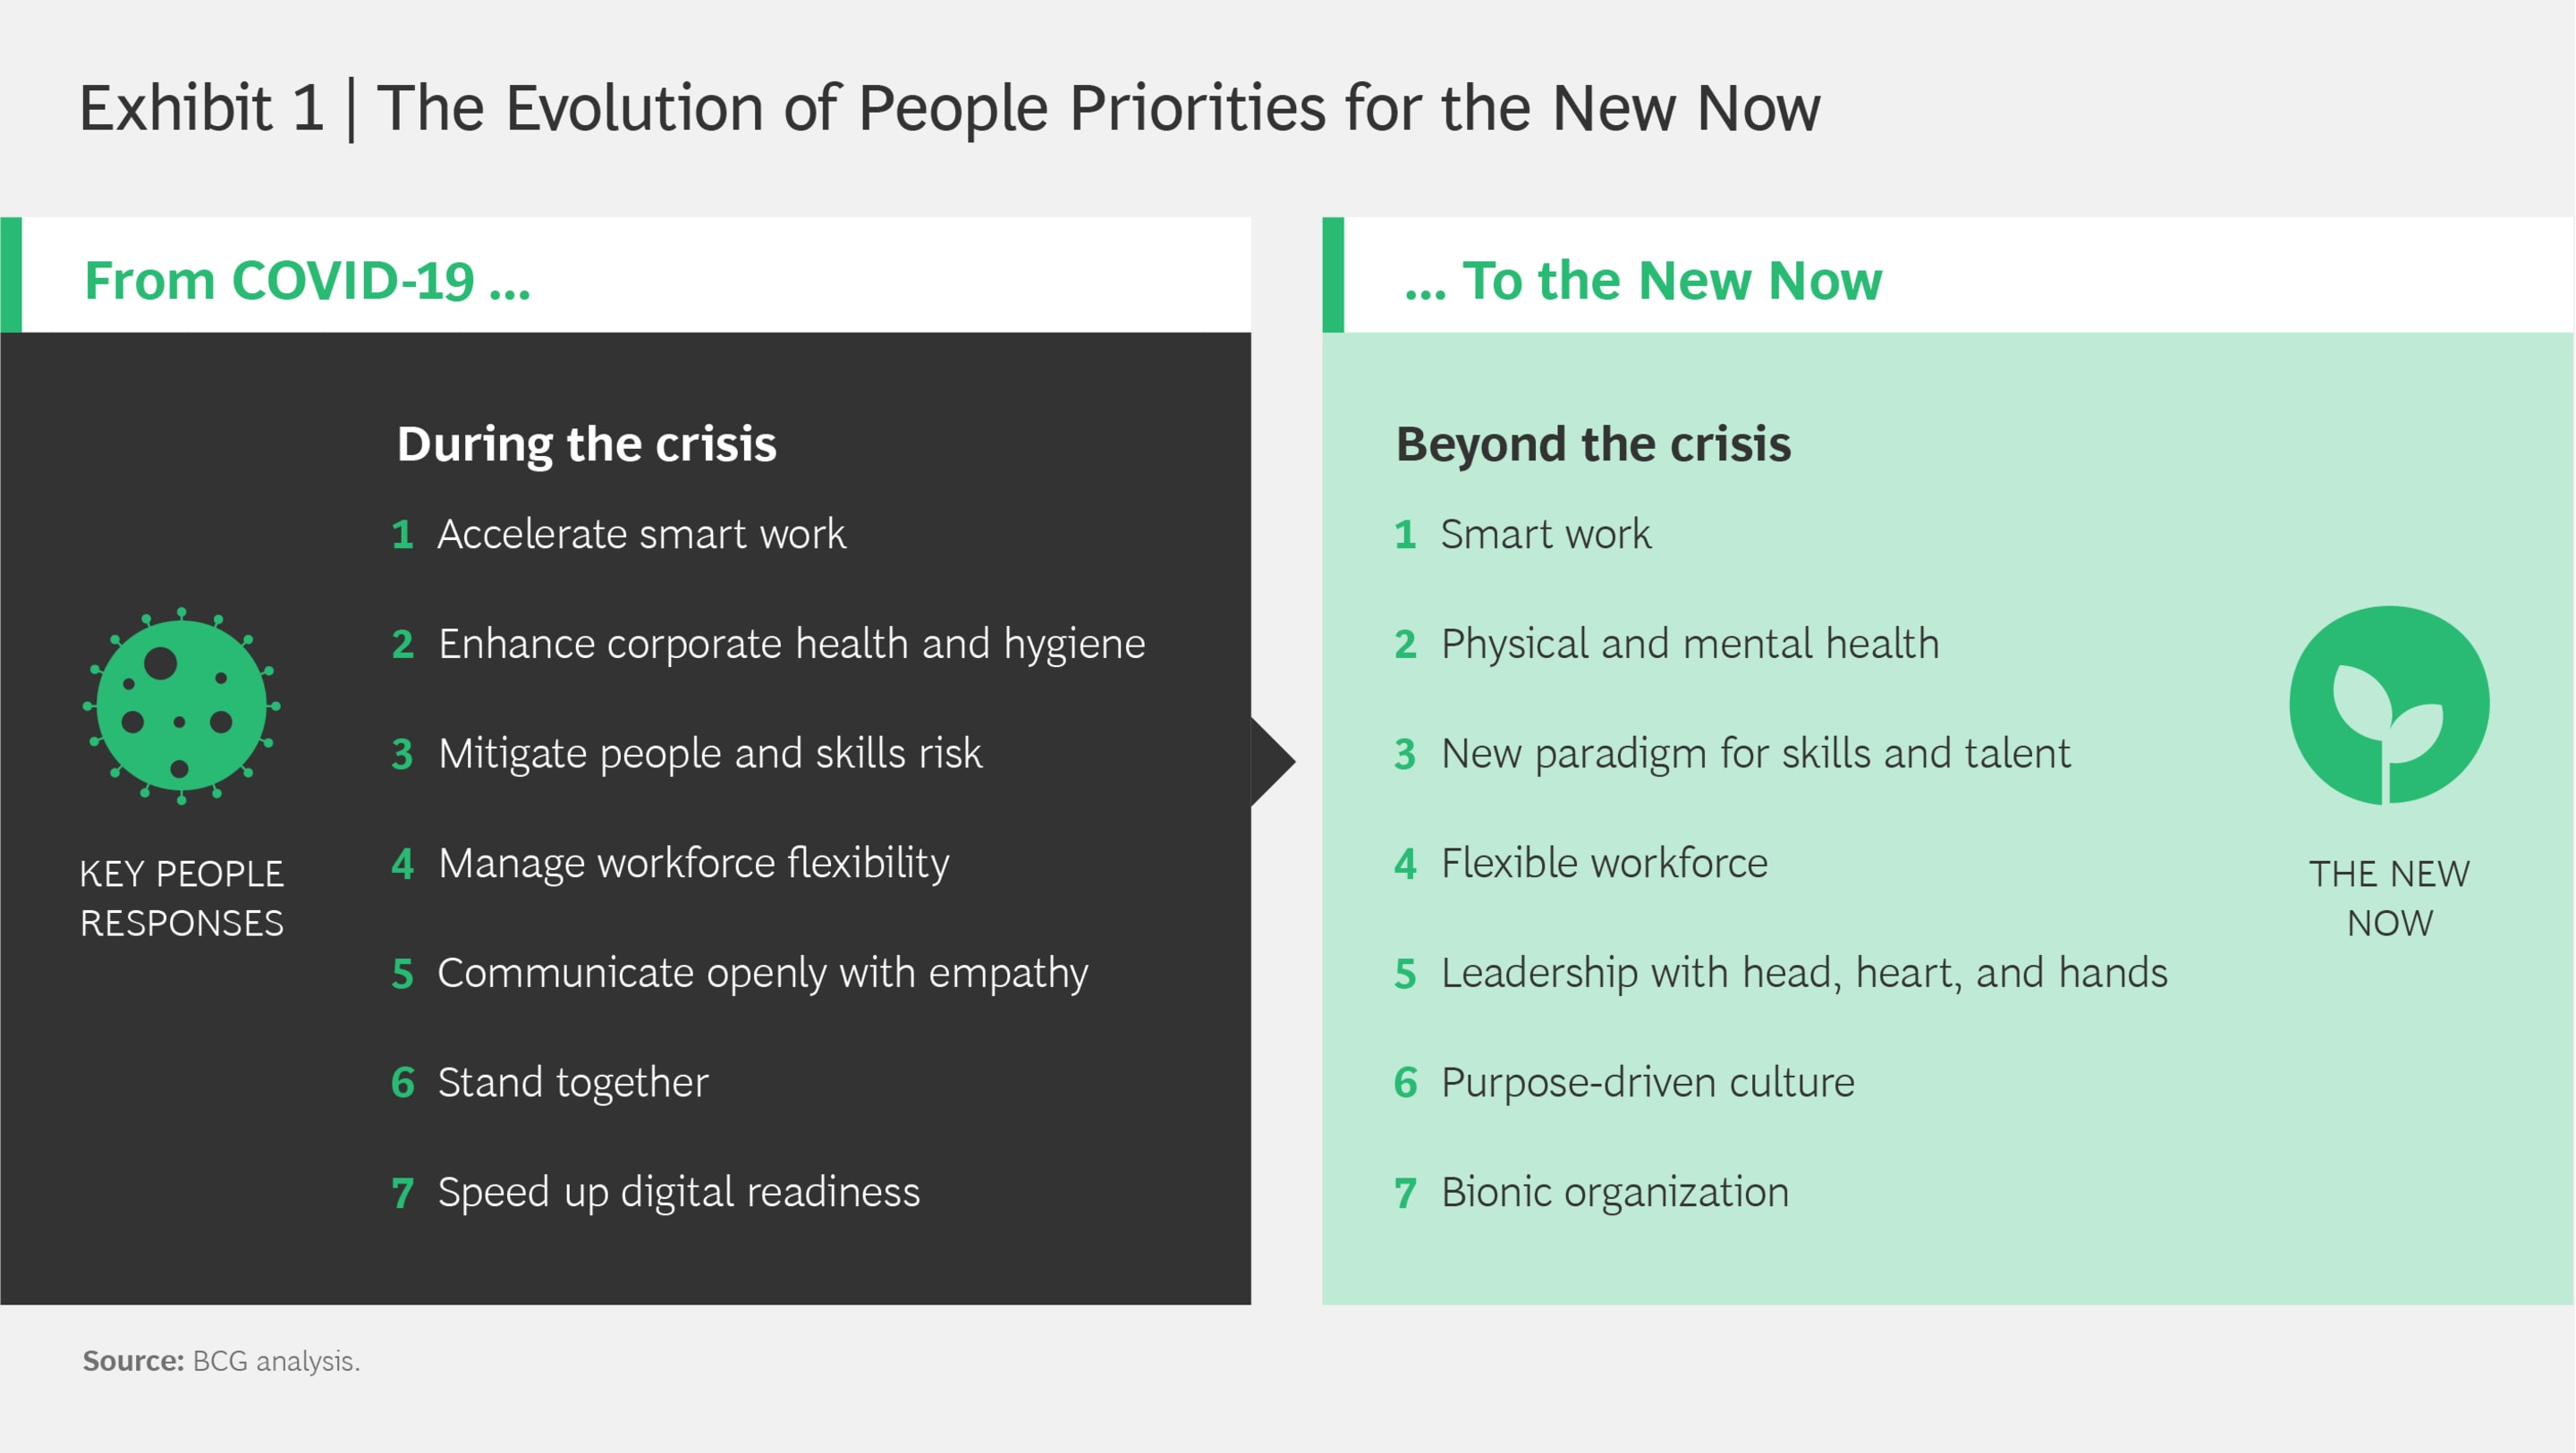 https://boston-consulting-group-res.cloudinary.com/image/fetch/w_2880,q_auto,f_auto/http://image-src.bcg.com/Images/People_Priorities_New_Normal_200428-01_tcm-245203.png